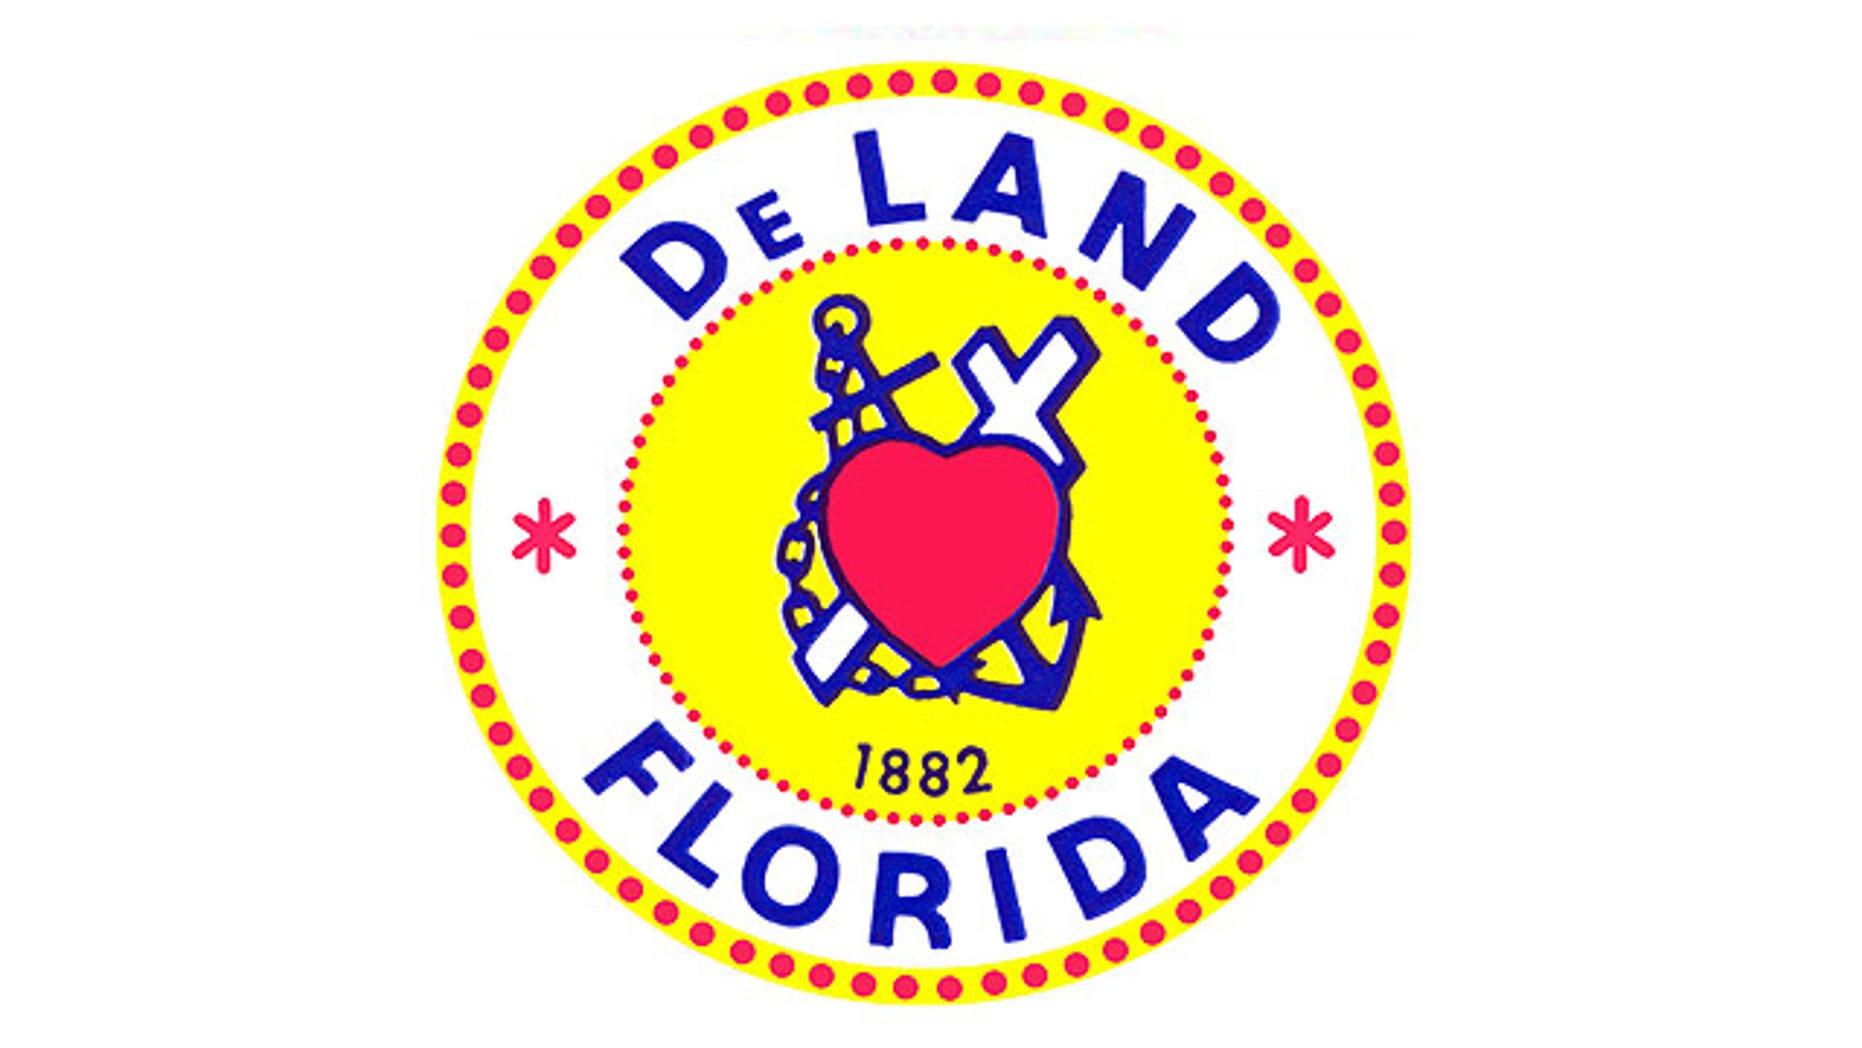 The city of DeLand, Fla., is fighting to keep its 131-year-old city seal, which shows a cross, a heart, and an anchor. Americans United for Separation of Church and State argues the symbols promote Christianity and should be removed.